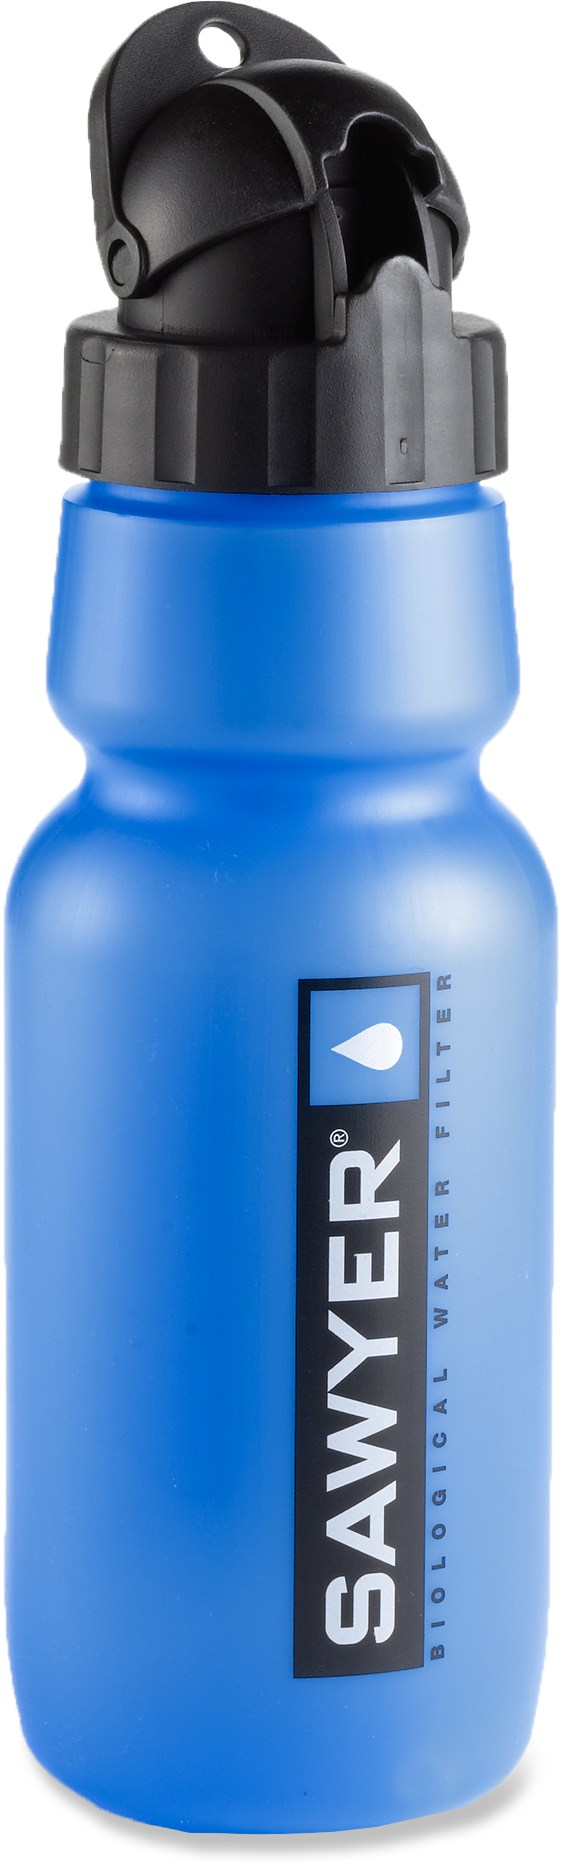 Sawyer Water Treatment Filter Bottle at REI.com